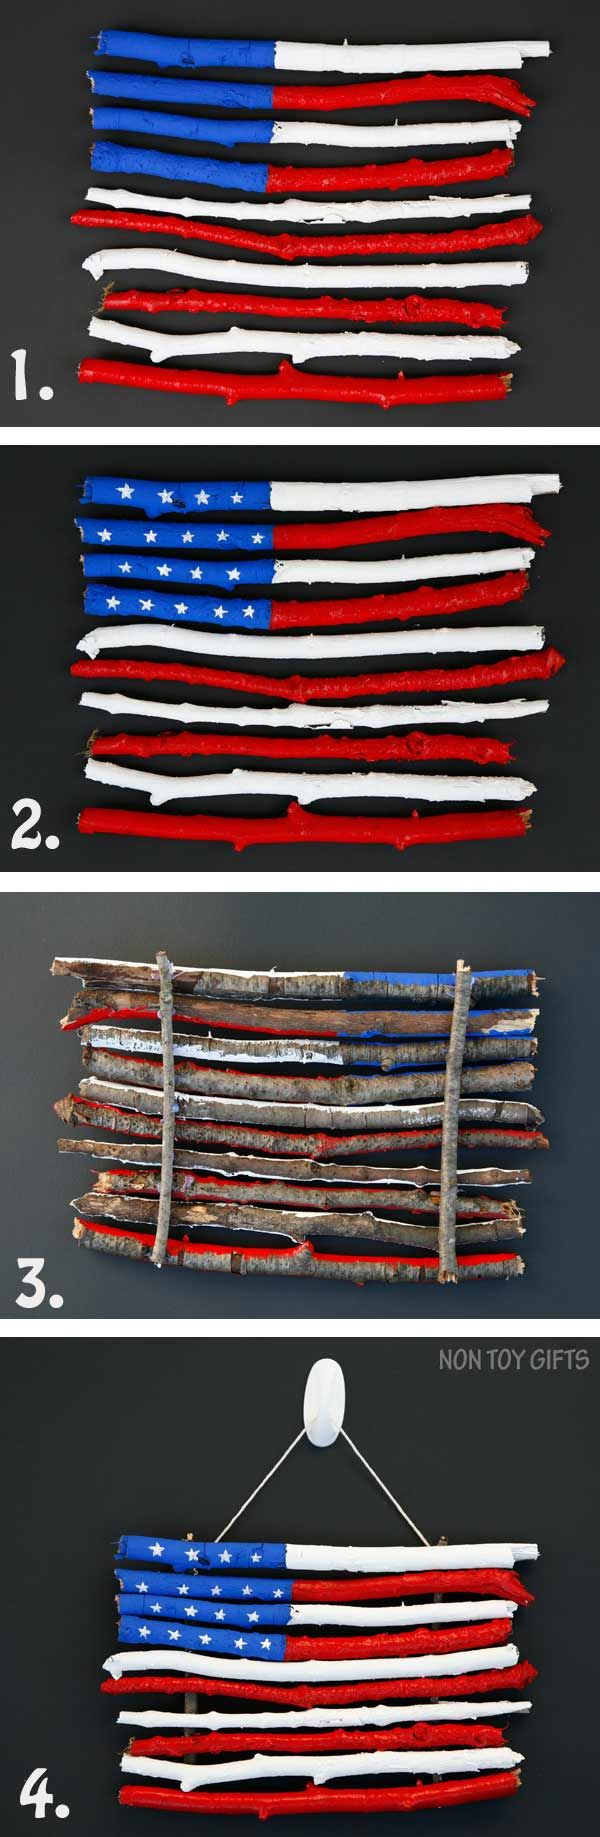 Uncategorized History Of American Flag For Kids 382 best patriotic crafts for kids images on pinterest diy an easy american flag craft it uses sticks and twigs perfect for